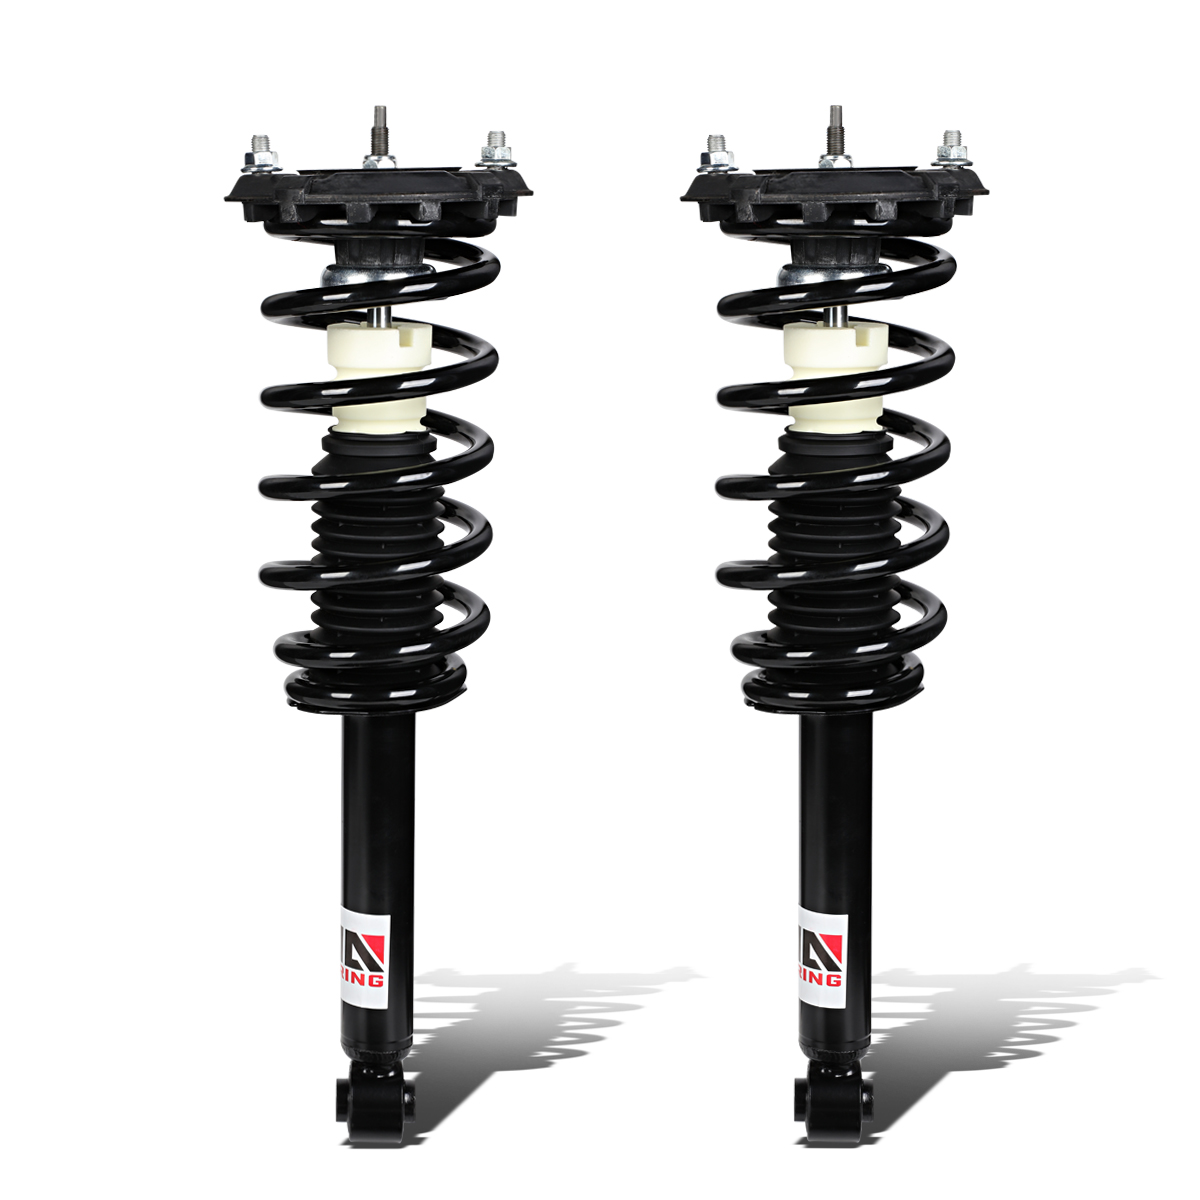 For 2000-2003 Nissan Maxima A33 Left/Right Rear Fully Assembled Shock / Strut + Coil Spring Suspension